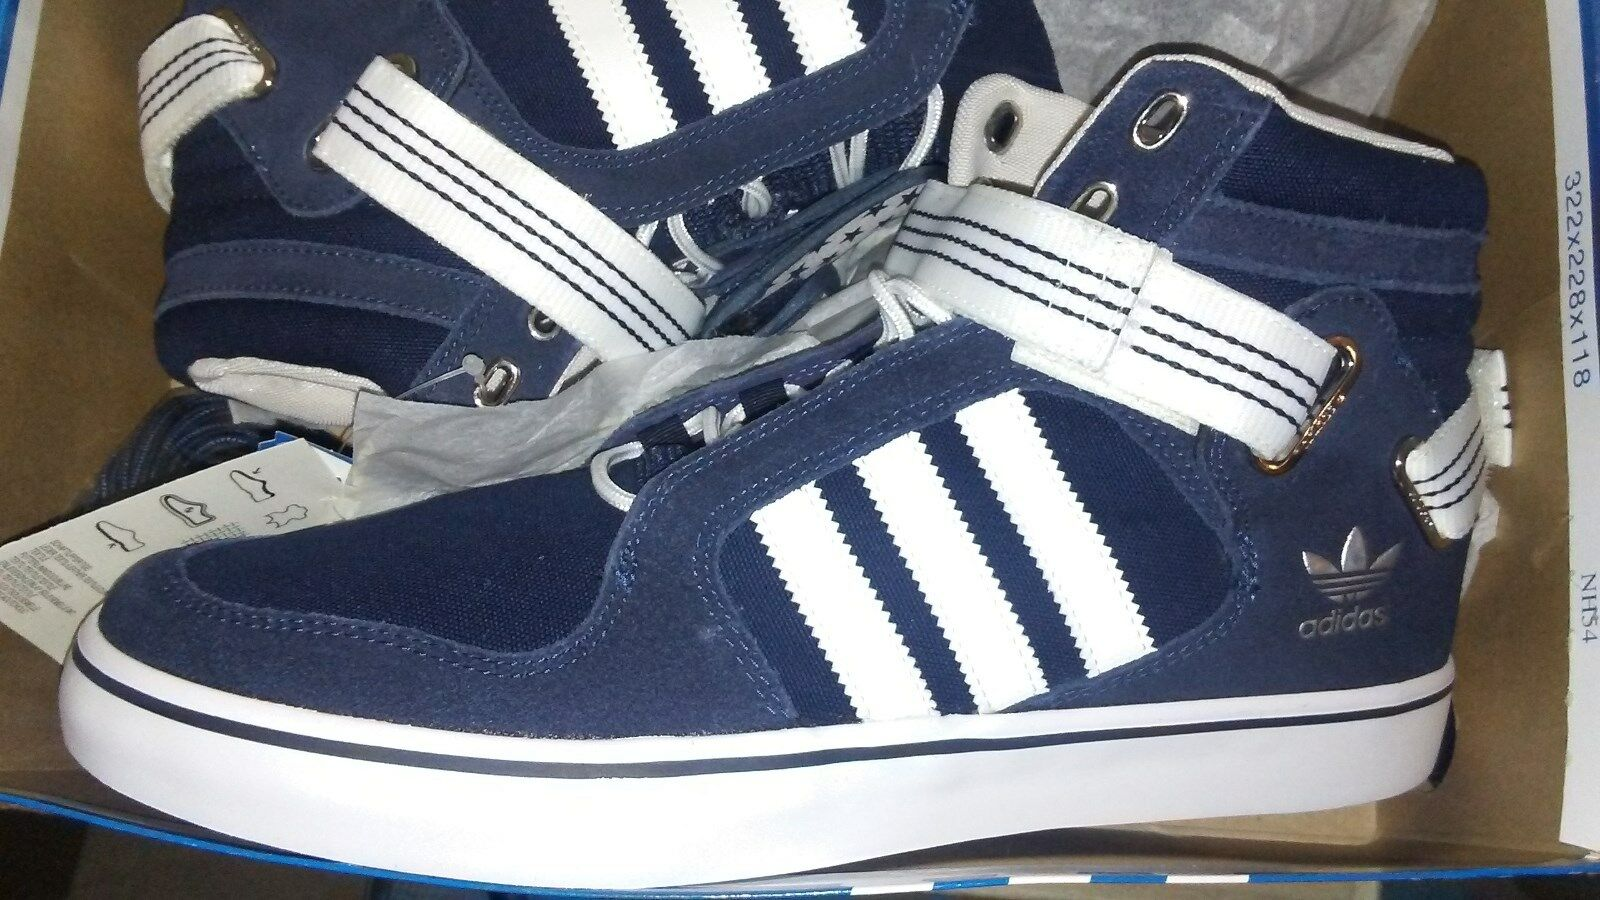 Adidas Originals ADI-RISE ALL-STAR EAST MID top blue canvas Basketball SHOES